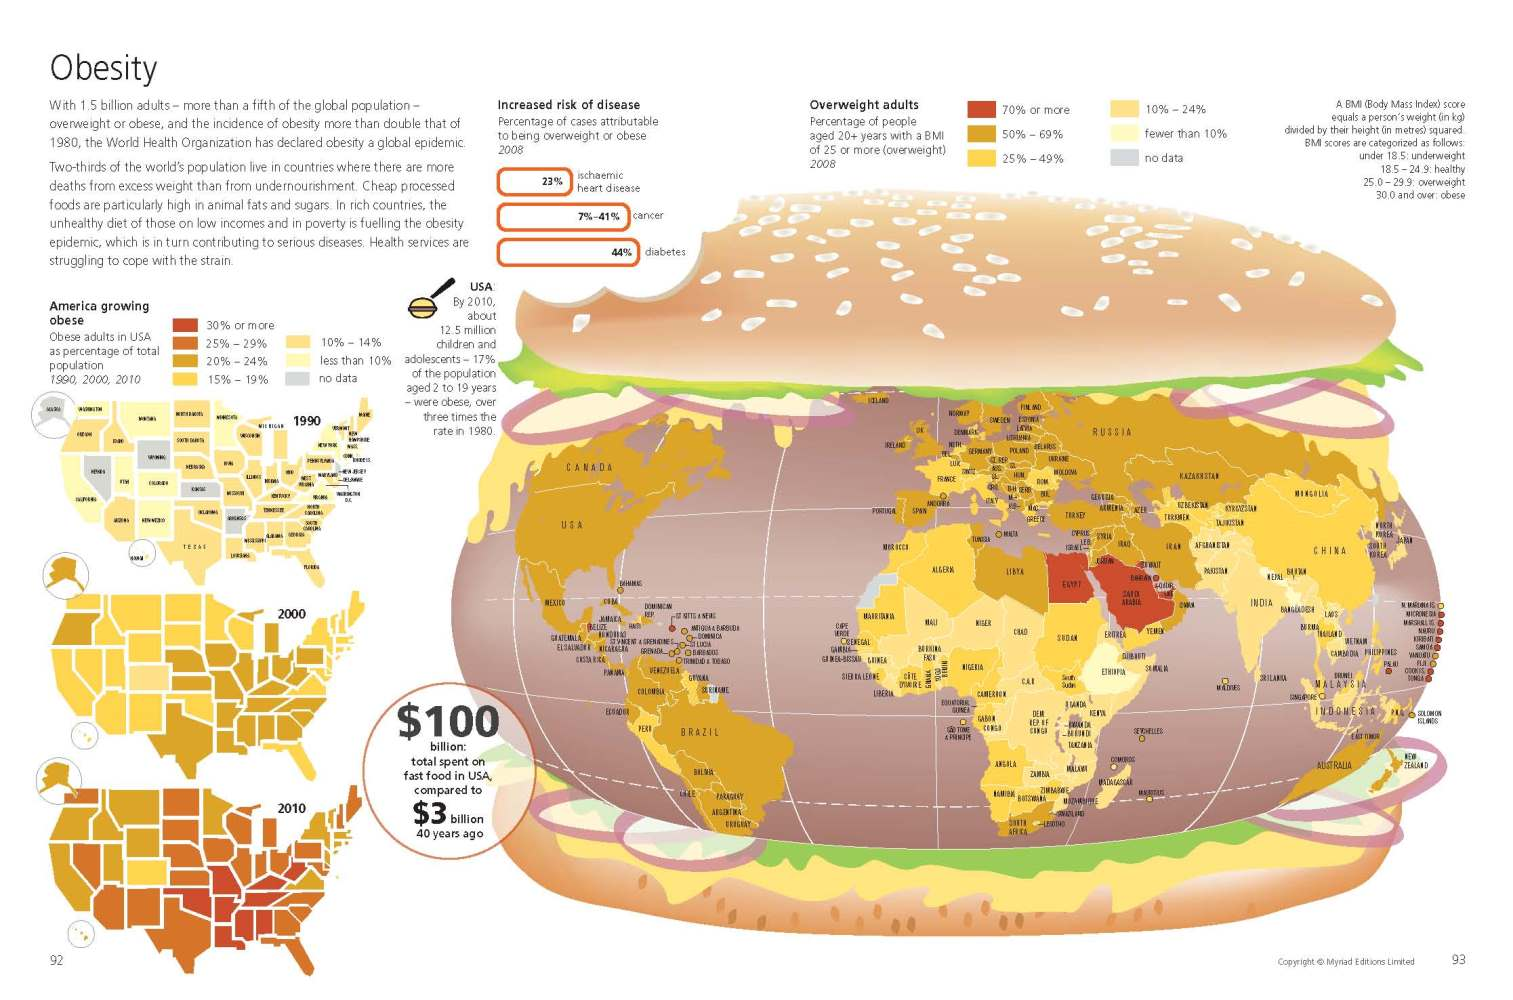 SOWAT-Obesity Wide Fast Food World Map on fast food people, mcdonald's world map, fast food india, fast food russia, fast food books, fast food united kingdom, fast food places, fast food asia, timeline world map, fast food games, jewelry world map, game thrones world map, fast food usa, fast food characters, long island world map, fast food sweden, fast food czech republic, fast food animals, pasta world map, fast food canada,